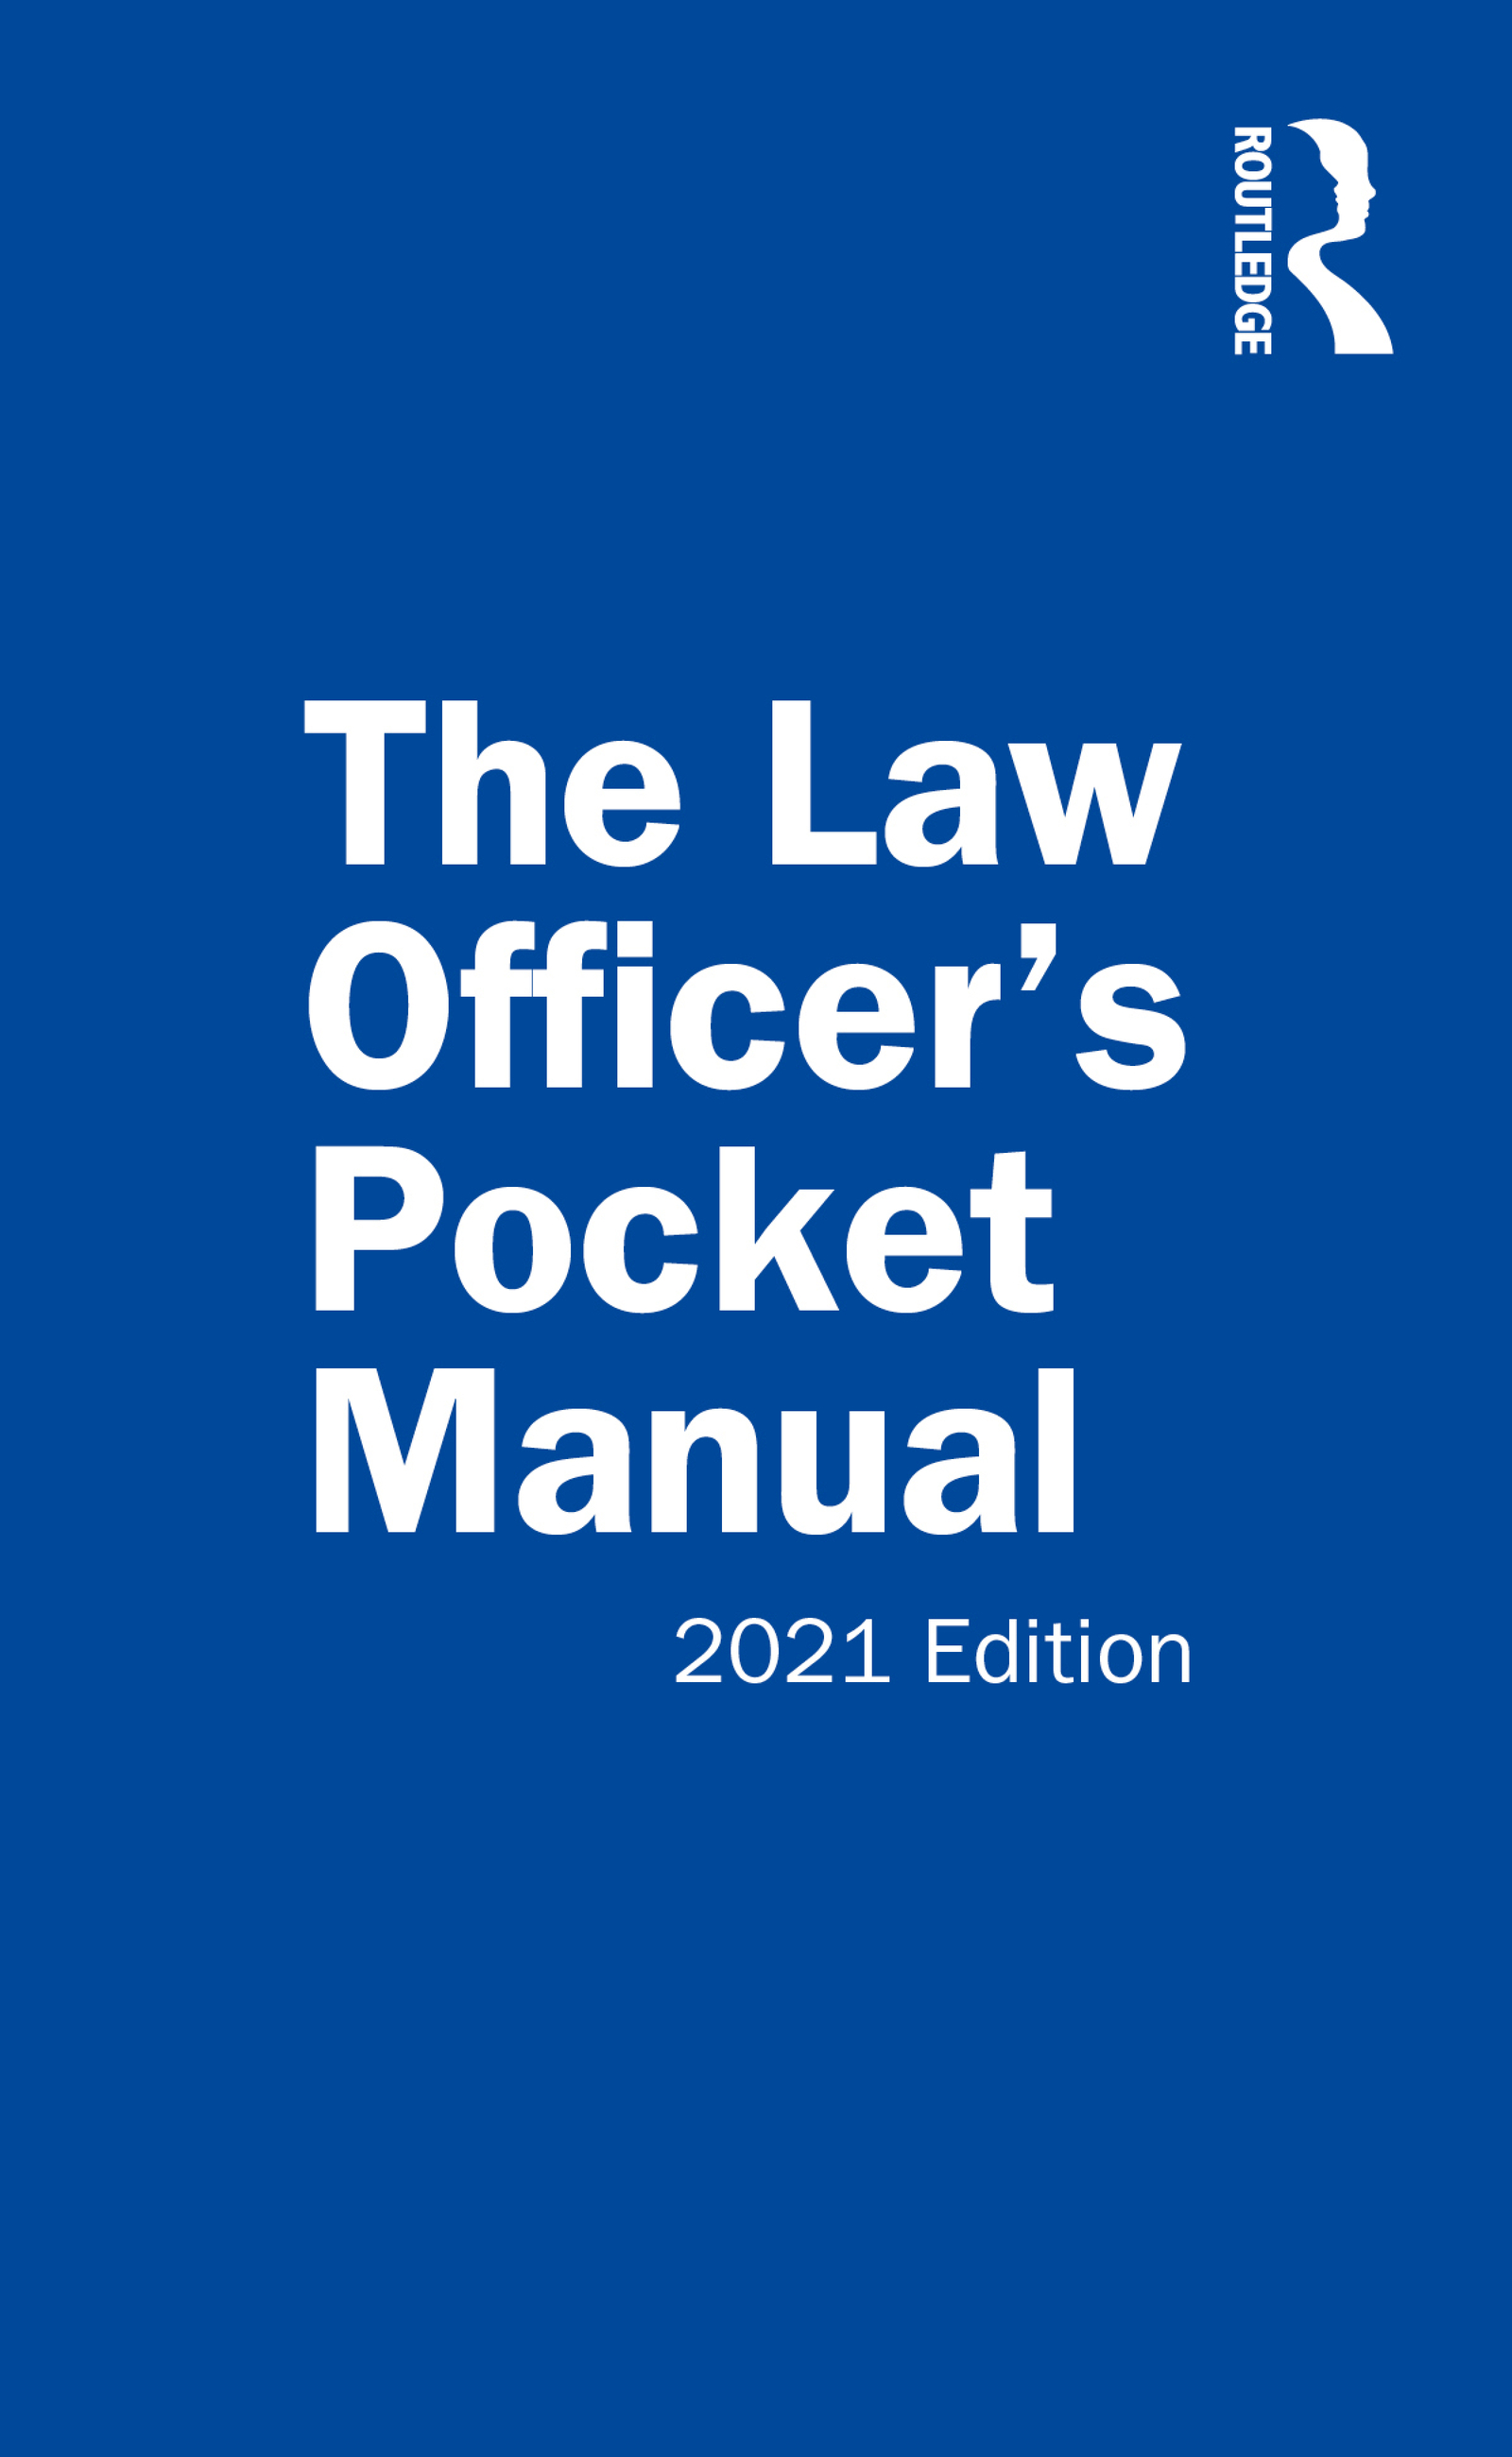 The Law Officer's Pocket Manual